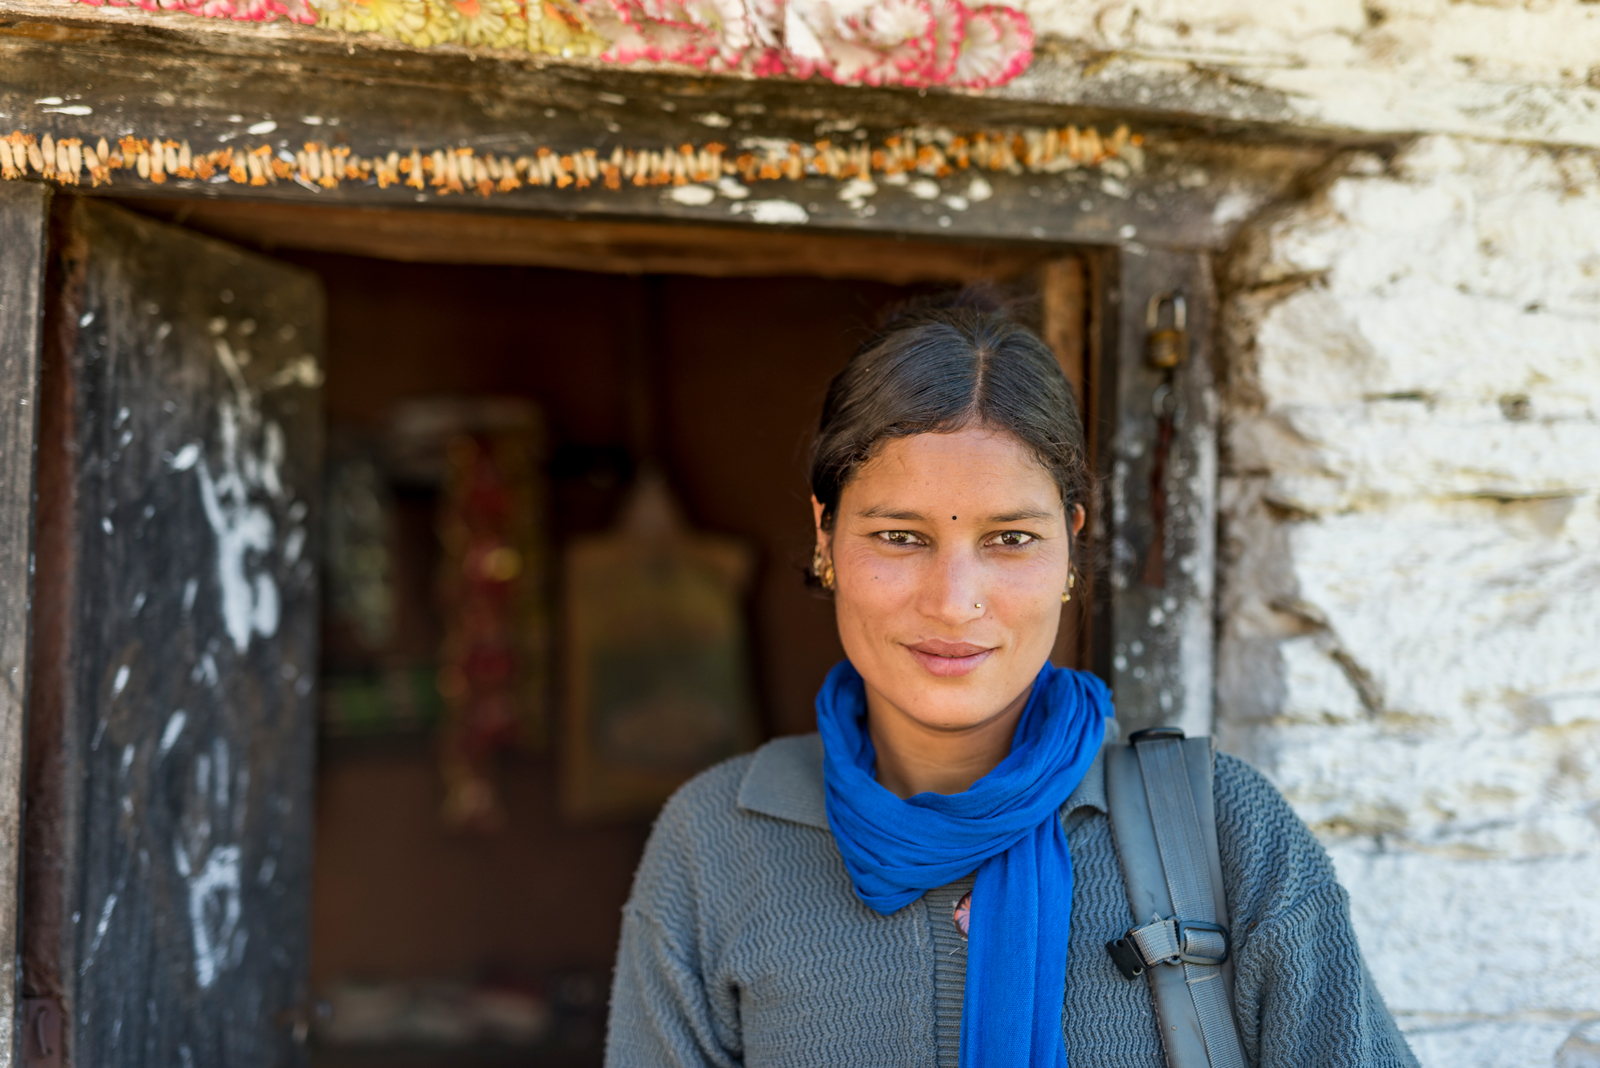 A young female Nepalese woman stands in front of an opn doorway, wearing a blue scarf and grey sweater, with a grey backpack over one shoulder.